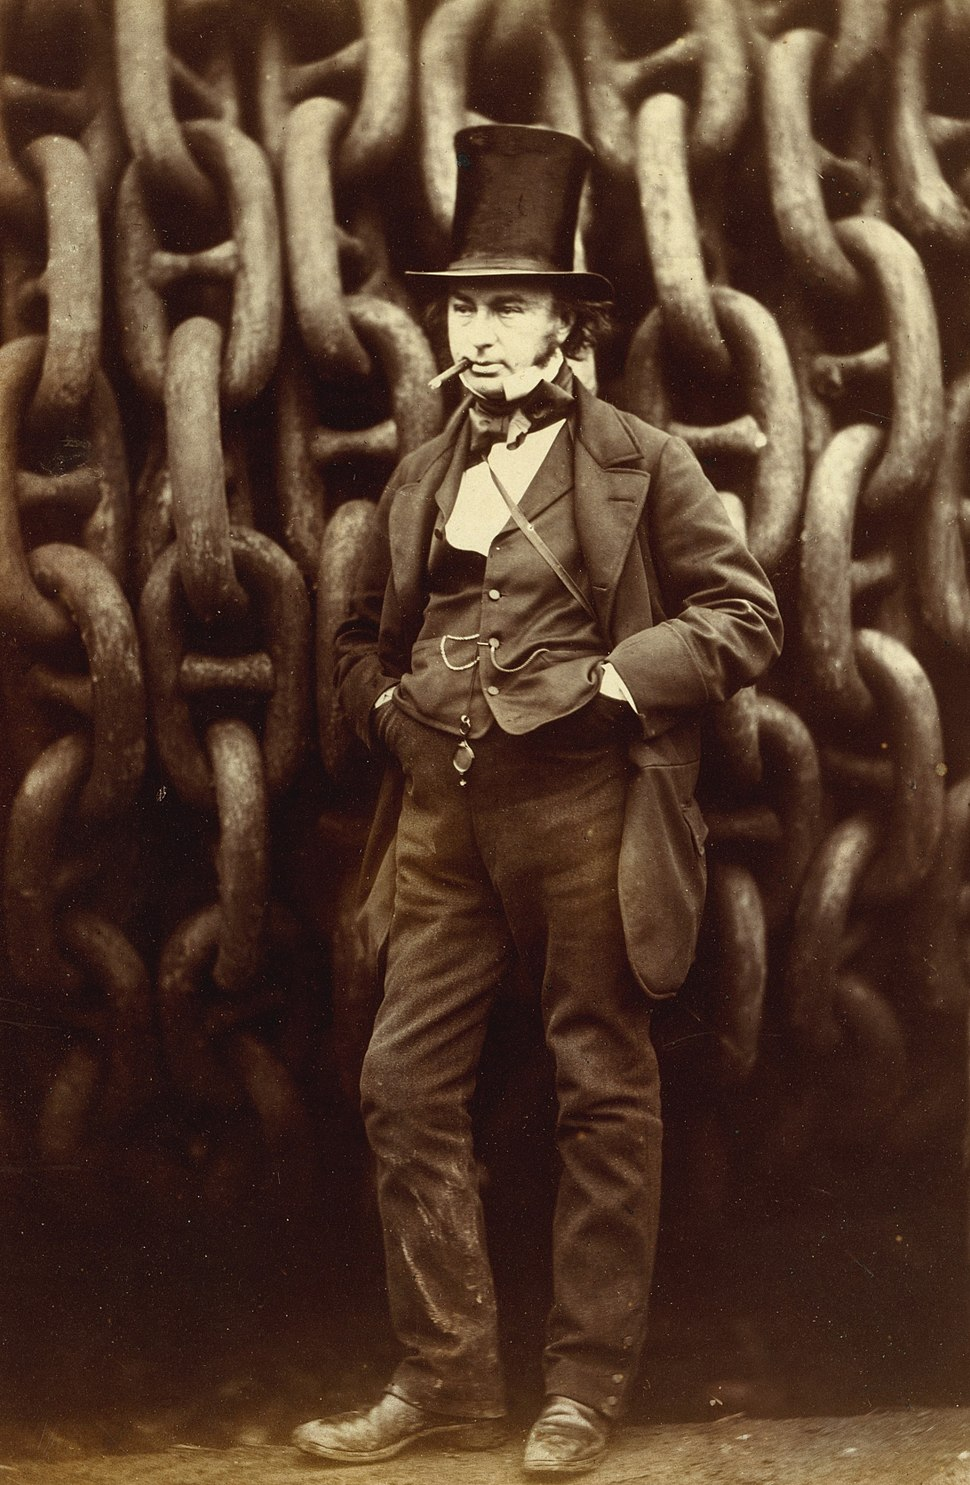 Robert Howlett (Isambard Kingdom Brunel Standing Before the Launching Chains of the Great Eastern), The Metropolitan Museum of Art (cropped)